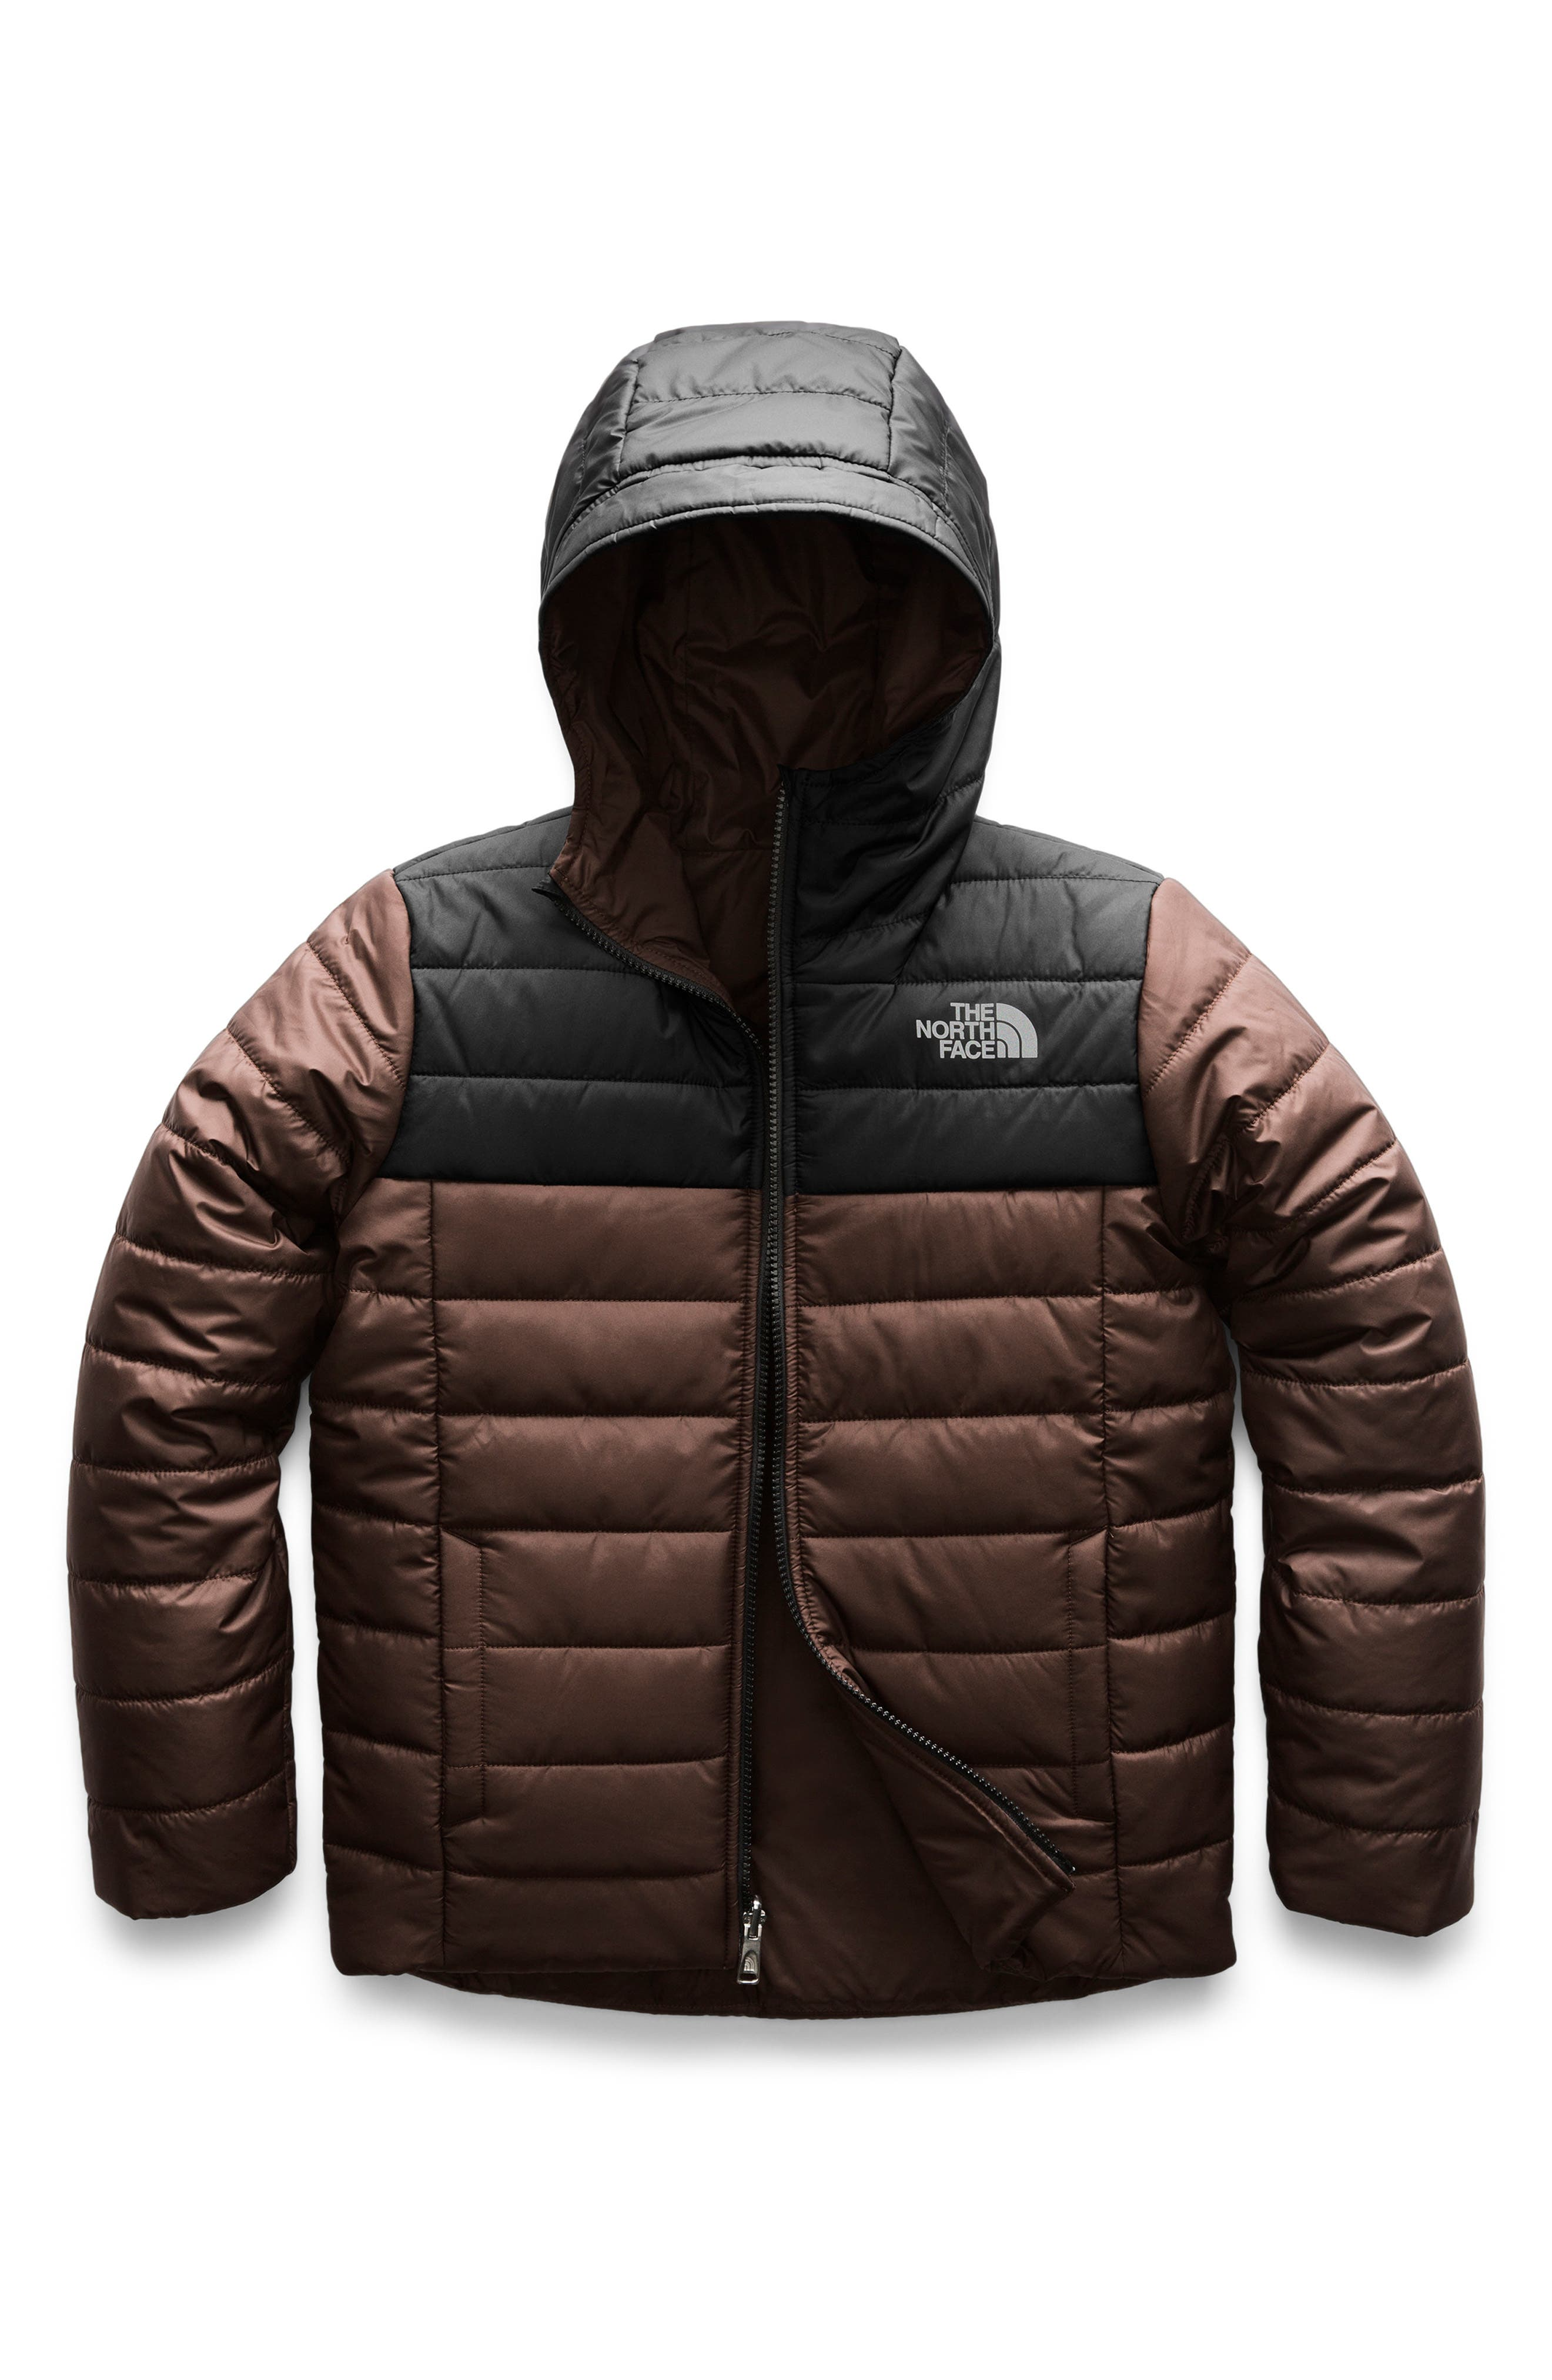 Boys The North Face Perrito Reversible Water Repellent Heetseaker(TM) Insulated Jacket Size XL (1820)  Brown